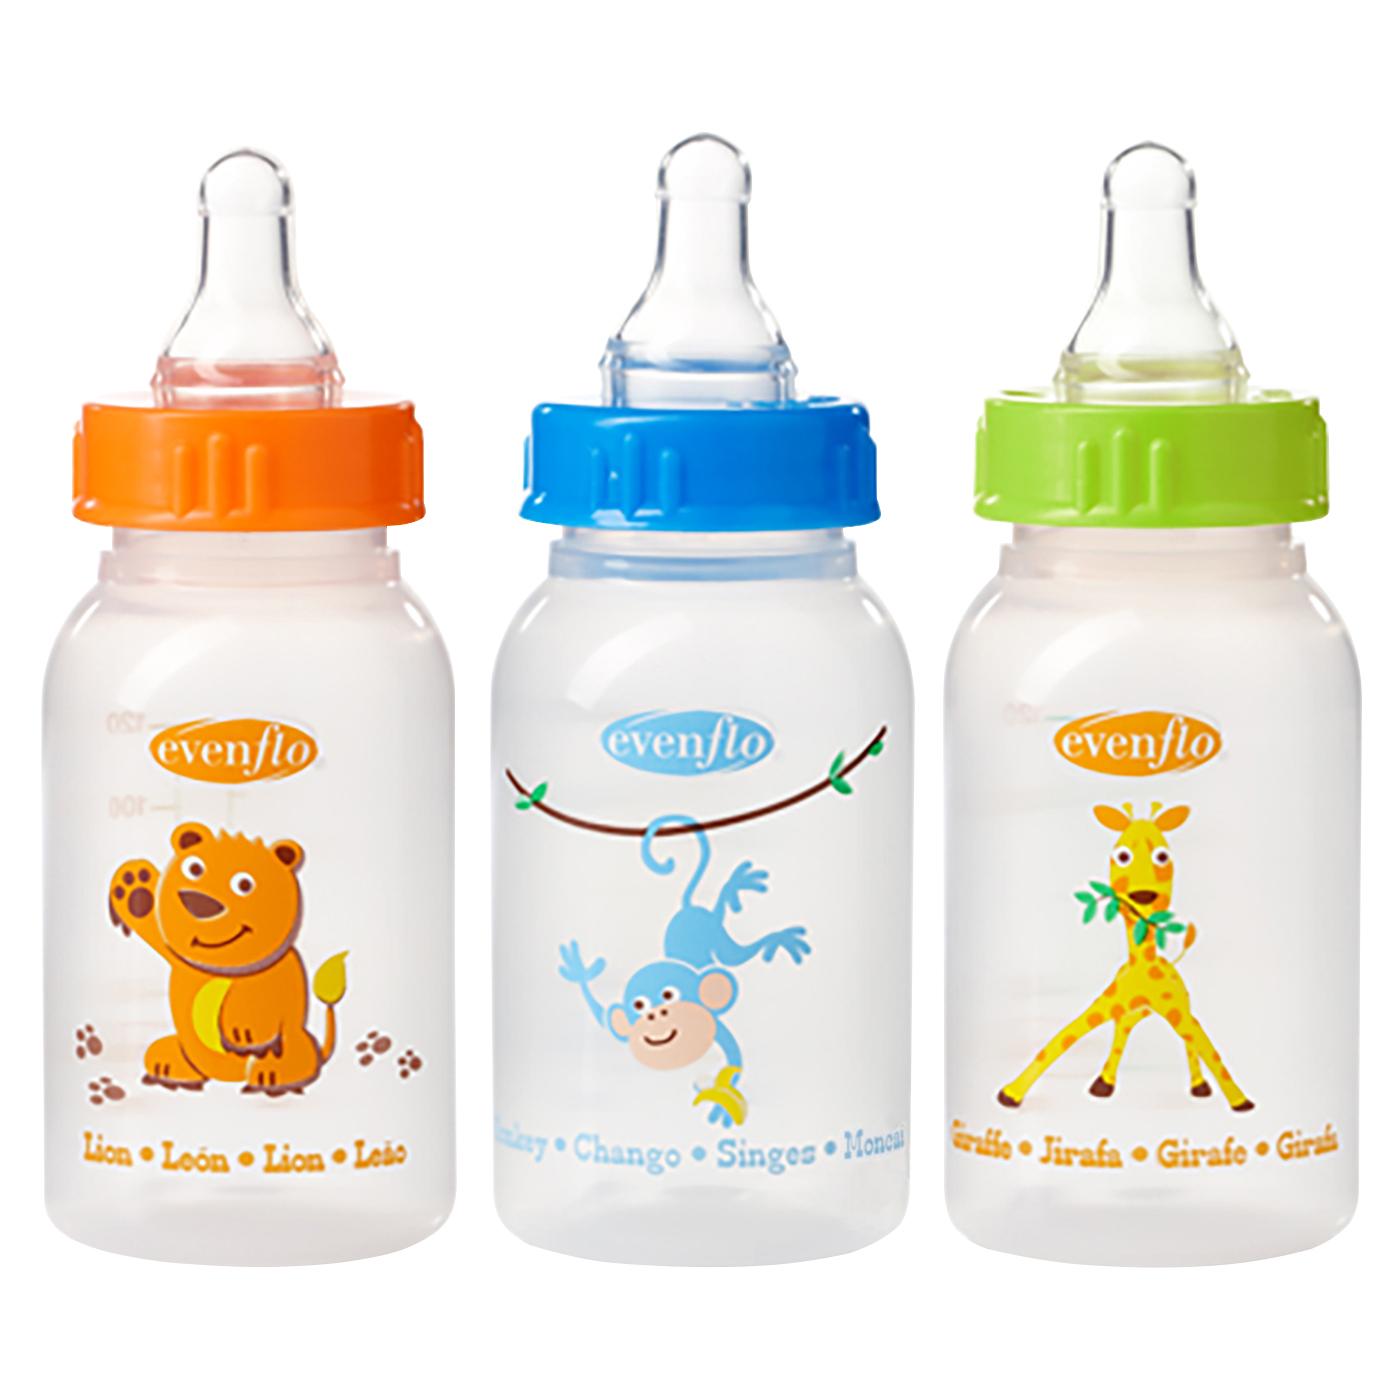 Evenflo Zoo Friends Bottle with Standard Nipple - 4 Ounce - 3 Count - Orange/Blue/Green